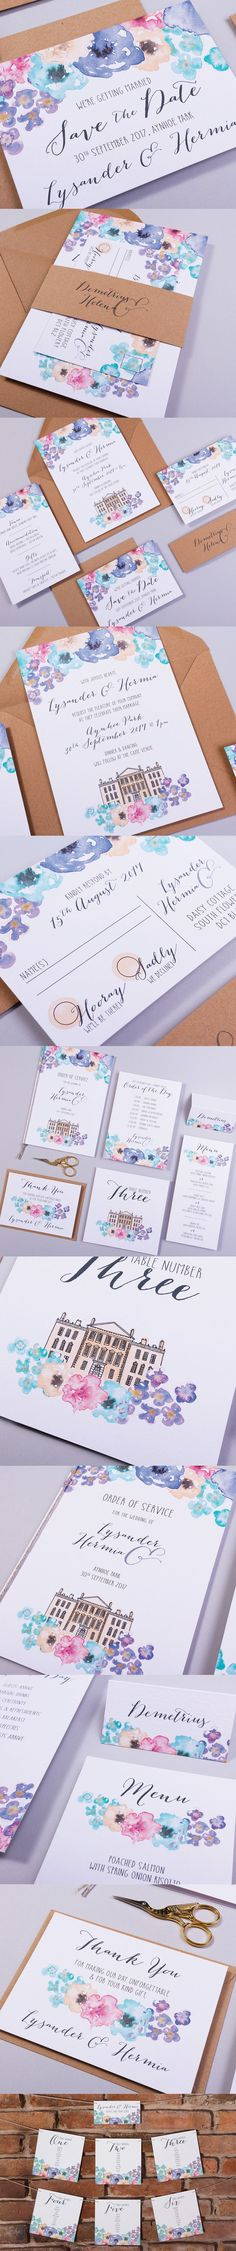 MIDSUMMER, with a romantic and whimsical theme this pretty invitation collection will feature bespoke imagery of your very own wedding venue peaking through the featured watercolour flowers, which will surely impress your guests.